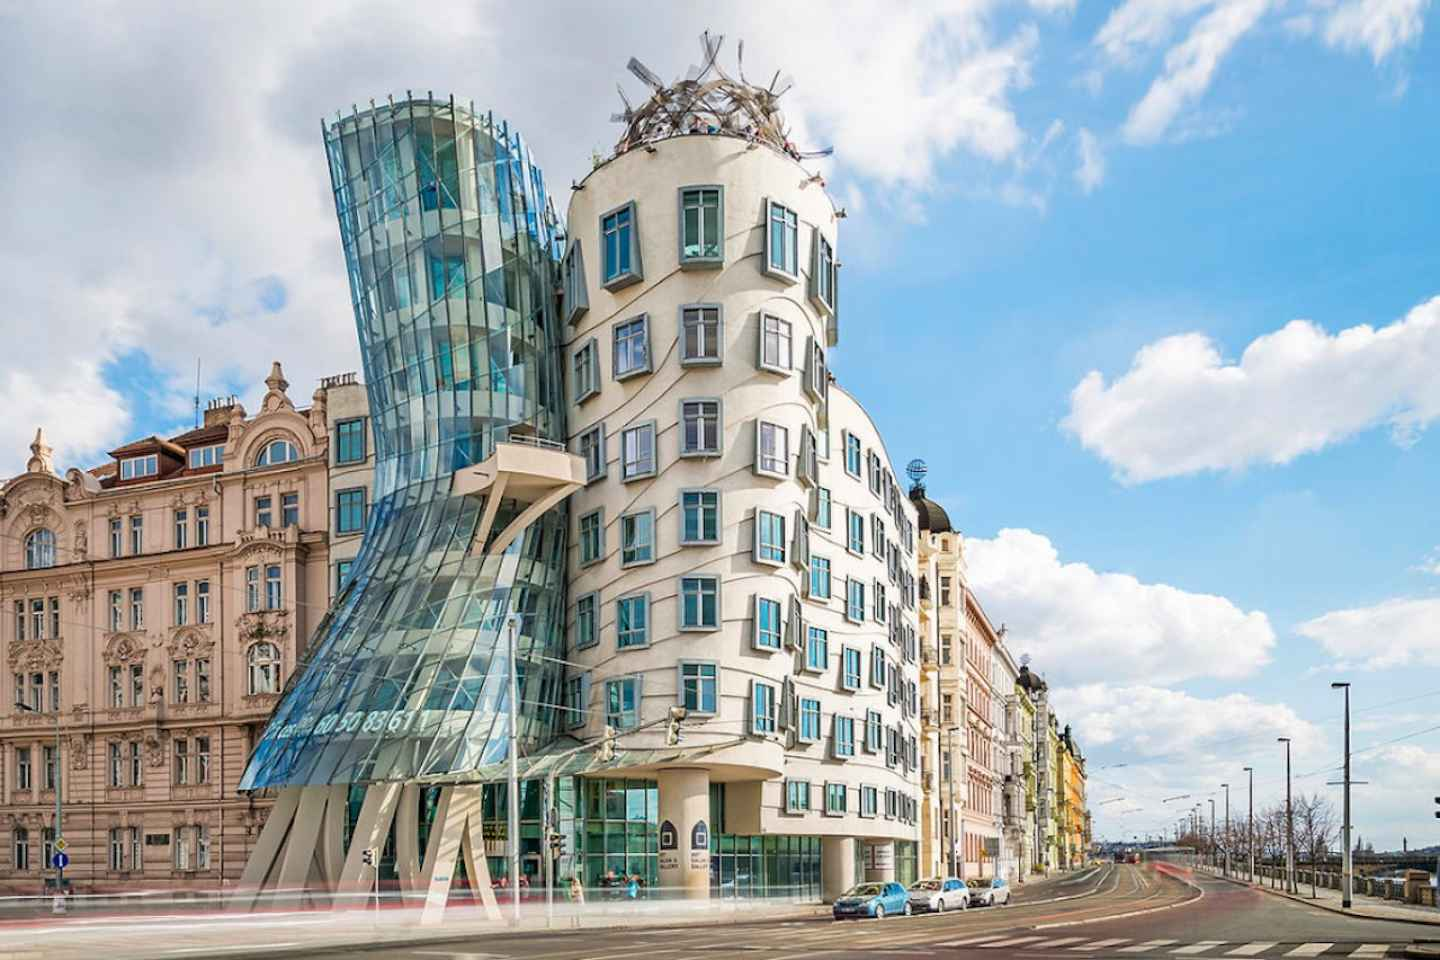 famous buildings in prague